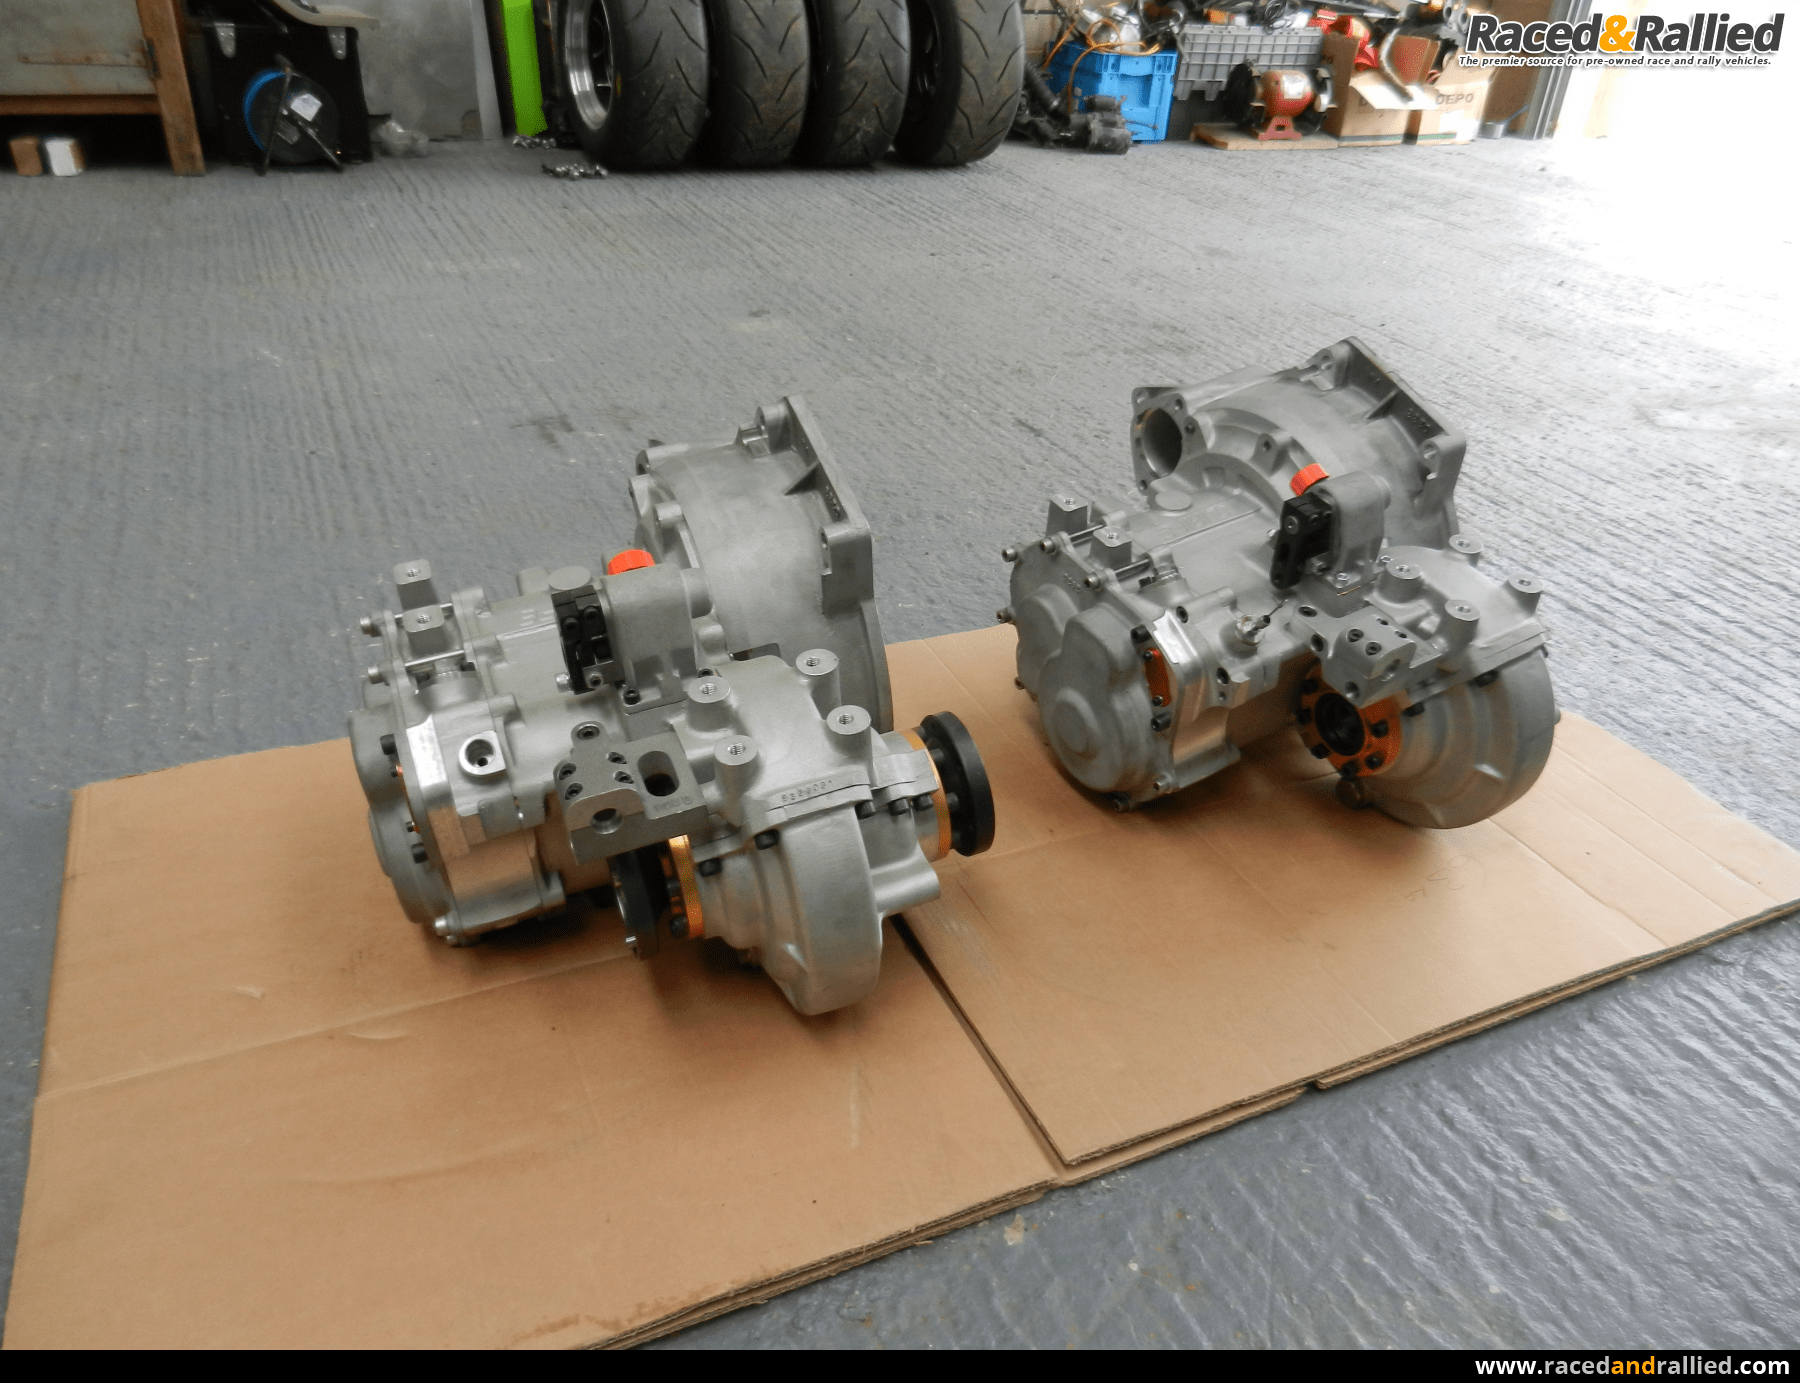 Quaife Sequential Gearbox Rally Car Parts For Sale At